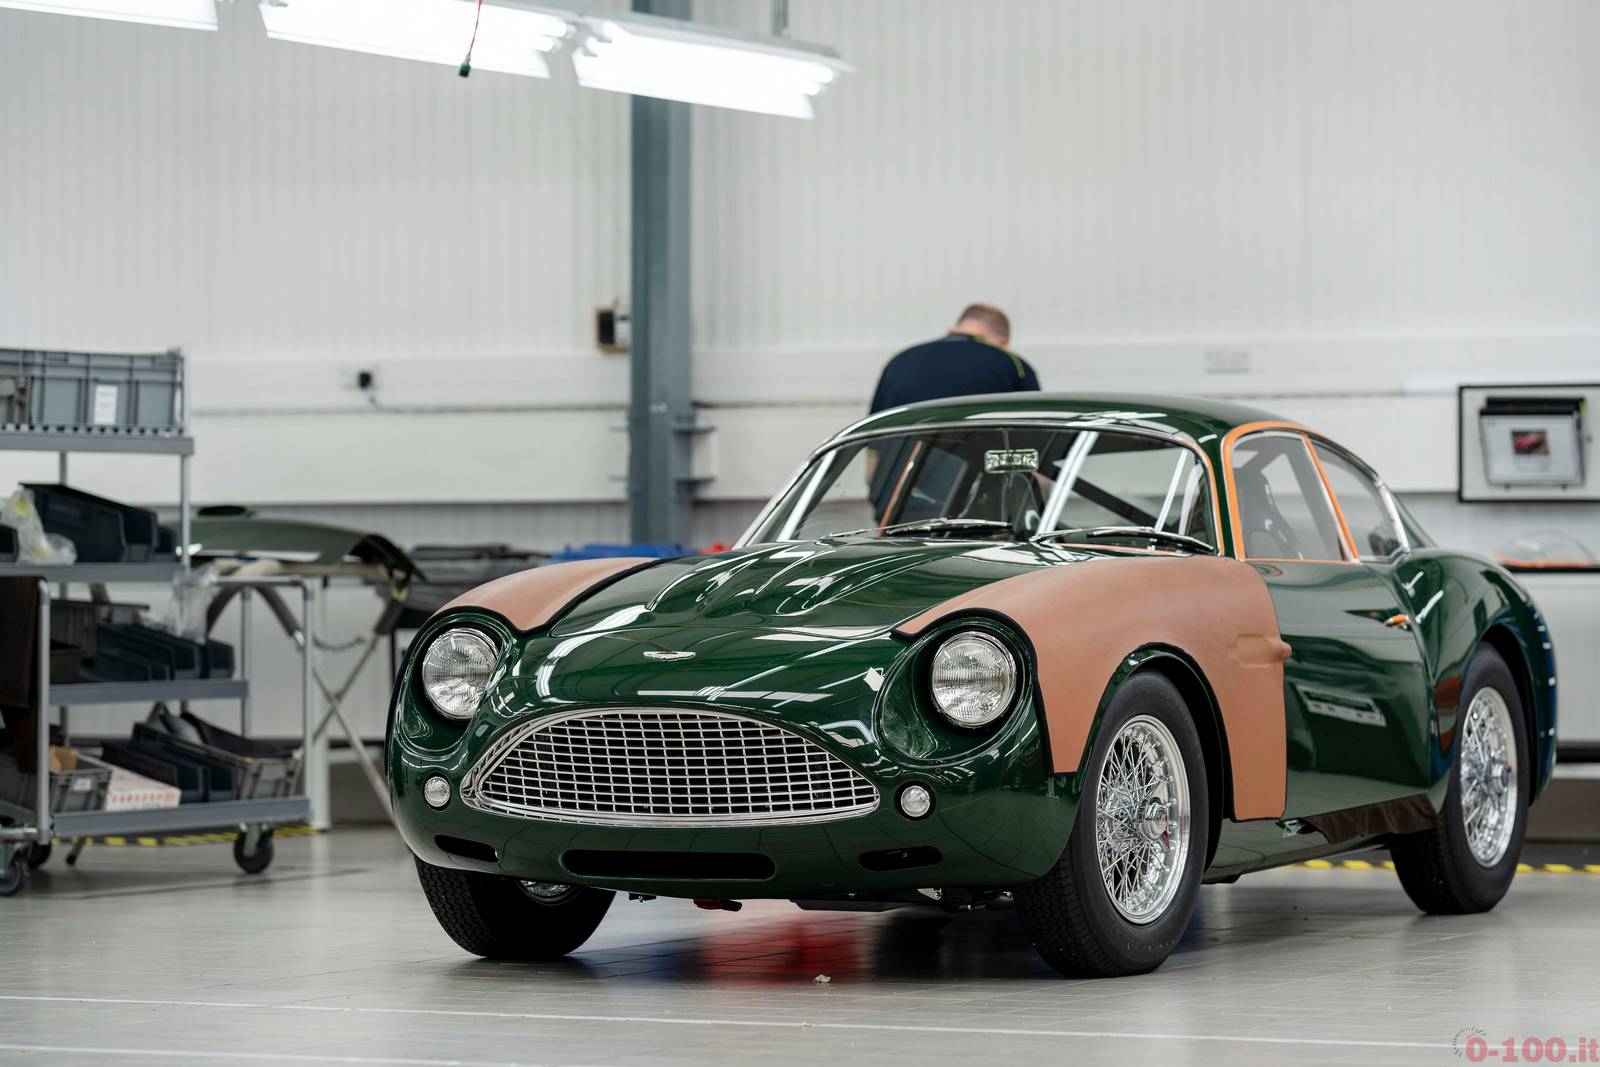 martin_db4_gtz_sanction_3_zagato_centenary_collection_0-100_12